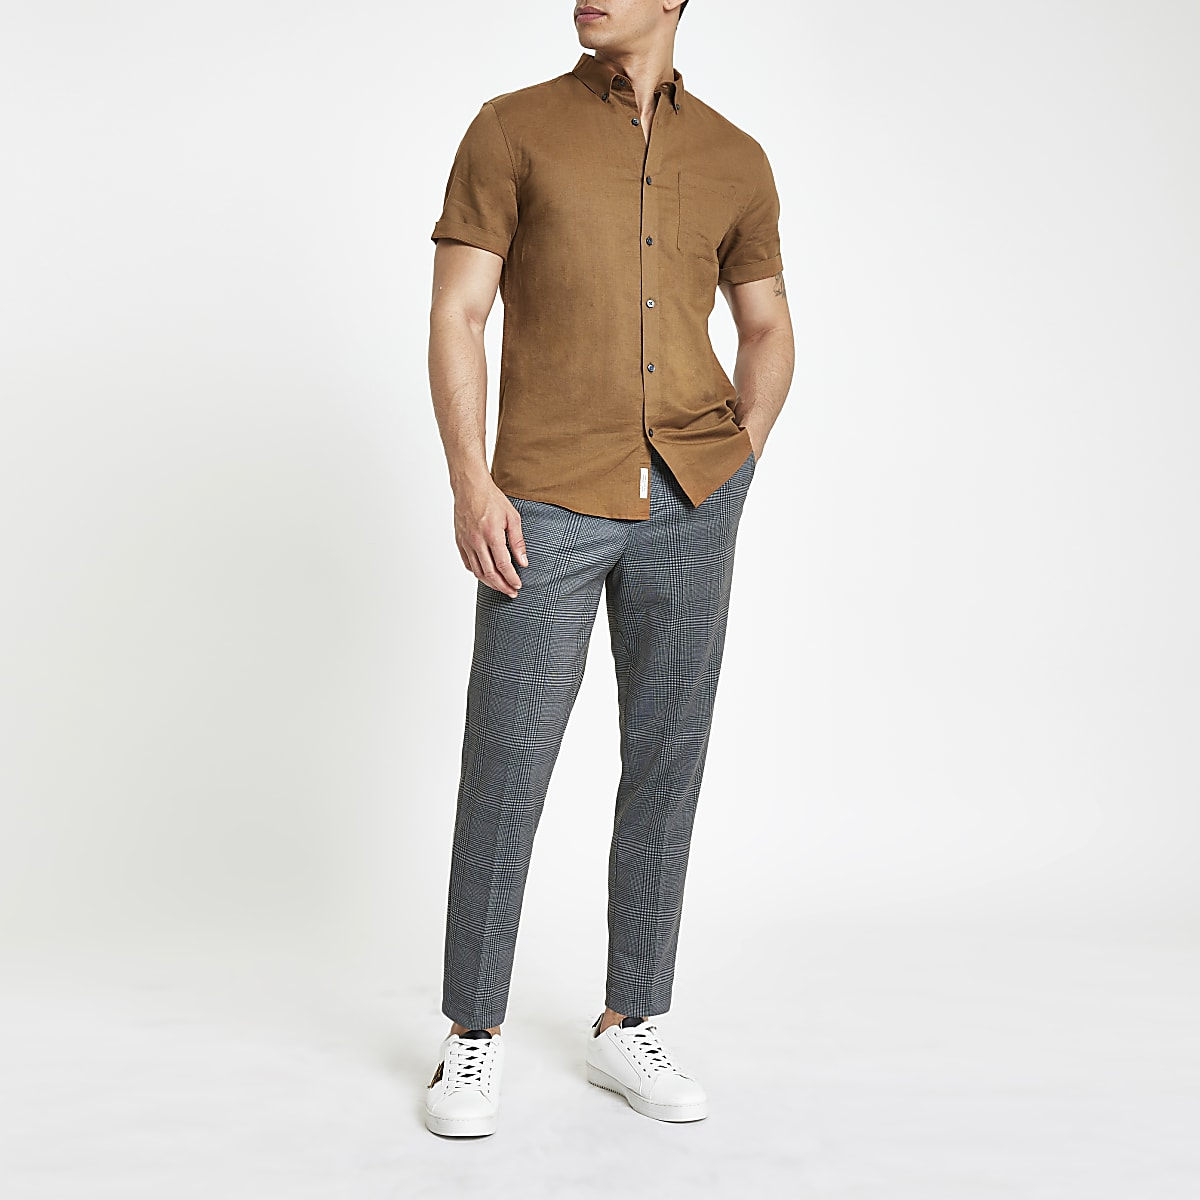 Brown linen short sleeve shirt